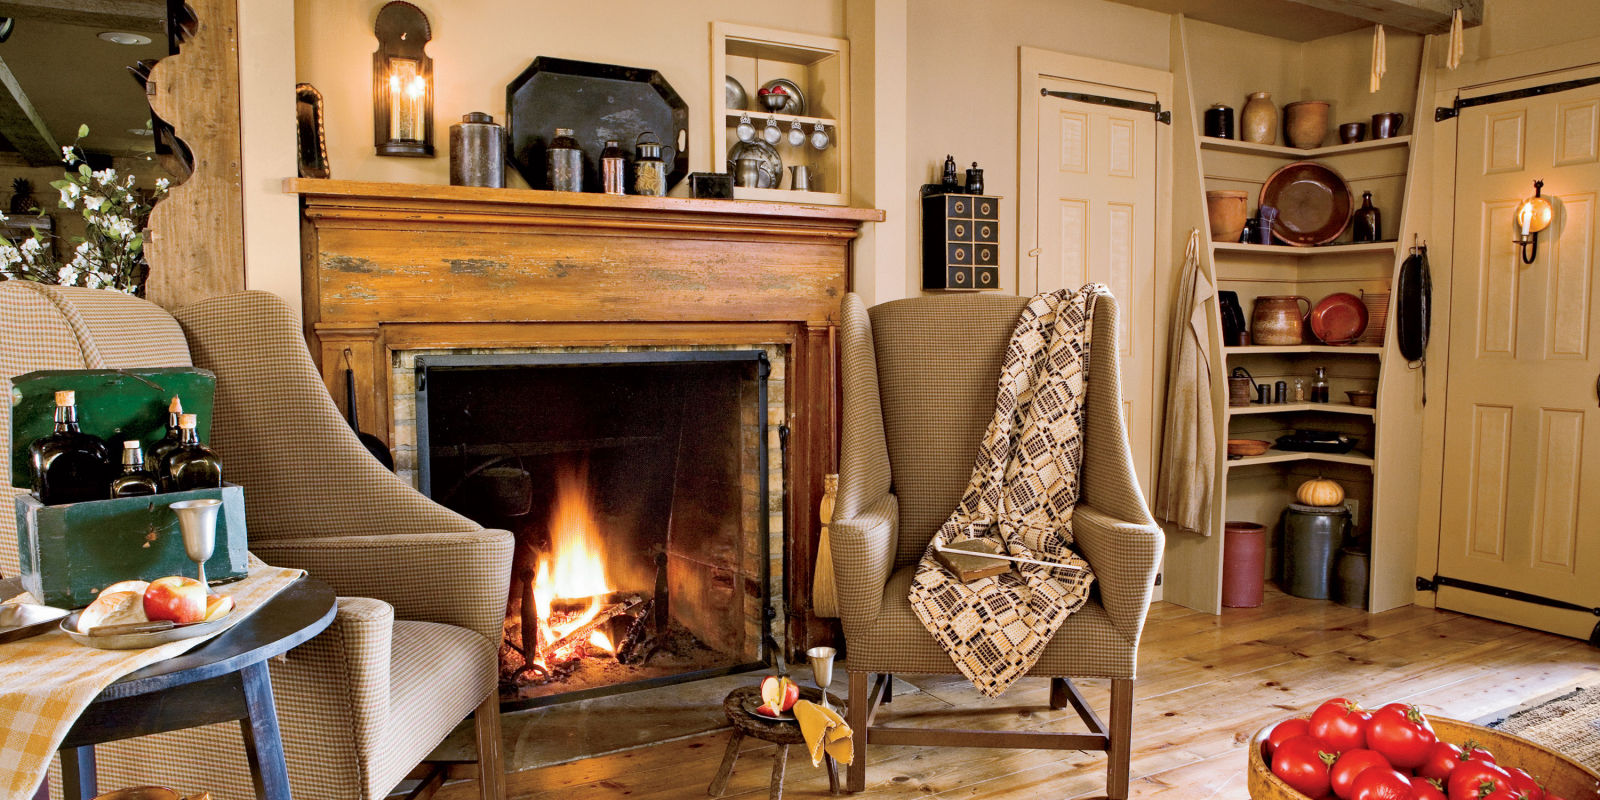 Design Fireplace Decorating Ideas 40 fireplace design ideas mantel decorating ideas